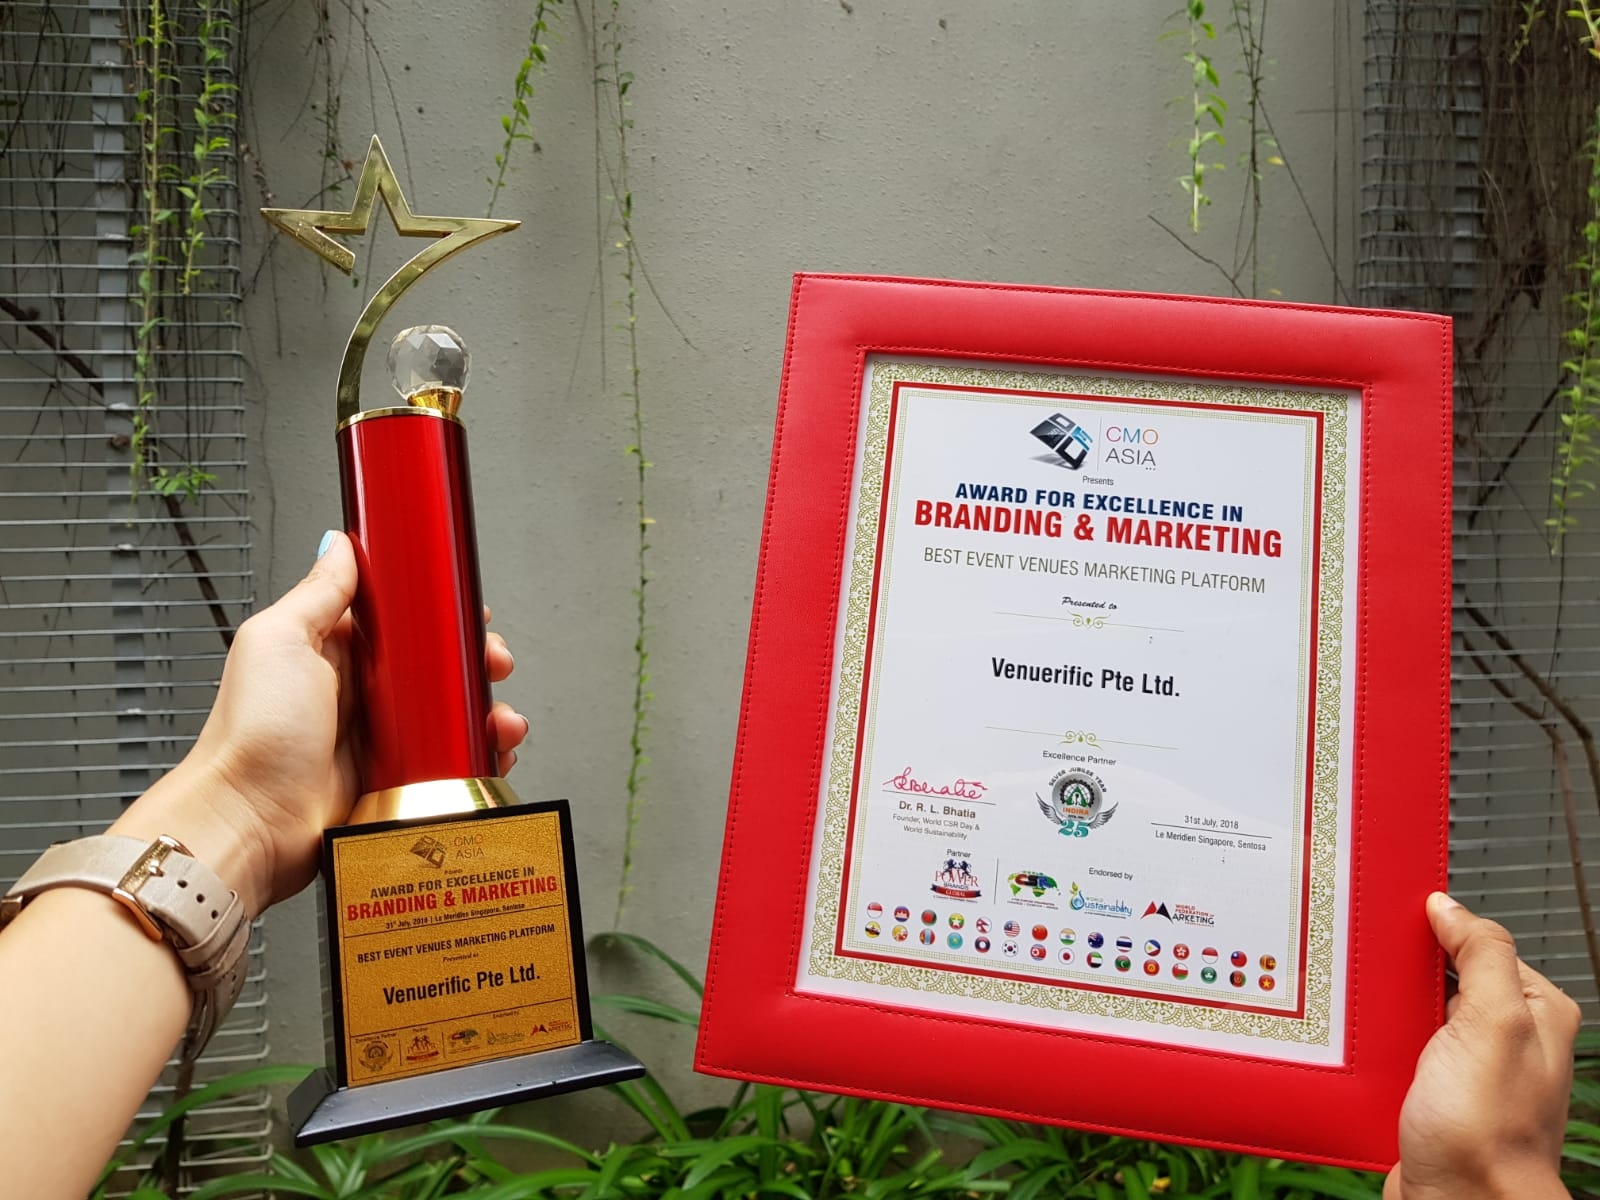 venuerific-best-venue-branding-marketing-platform-2018- award